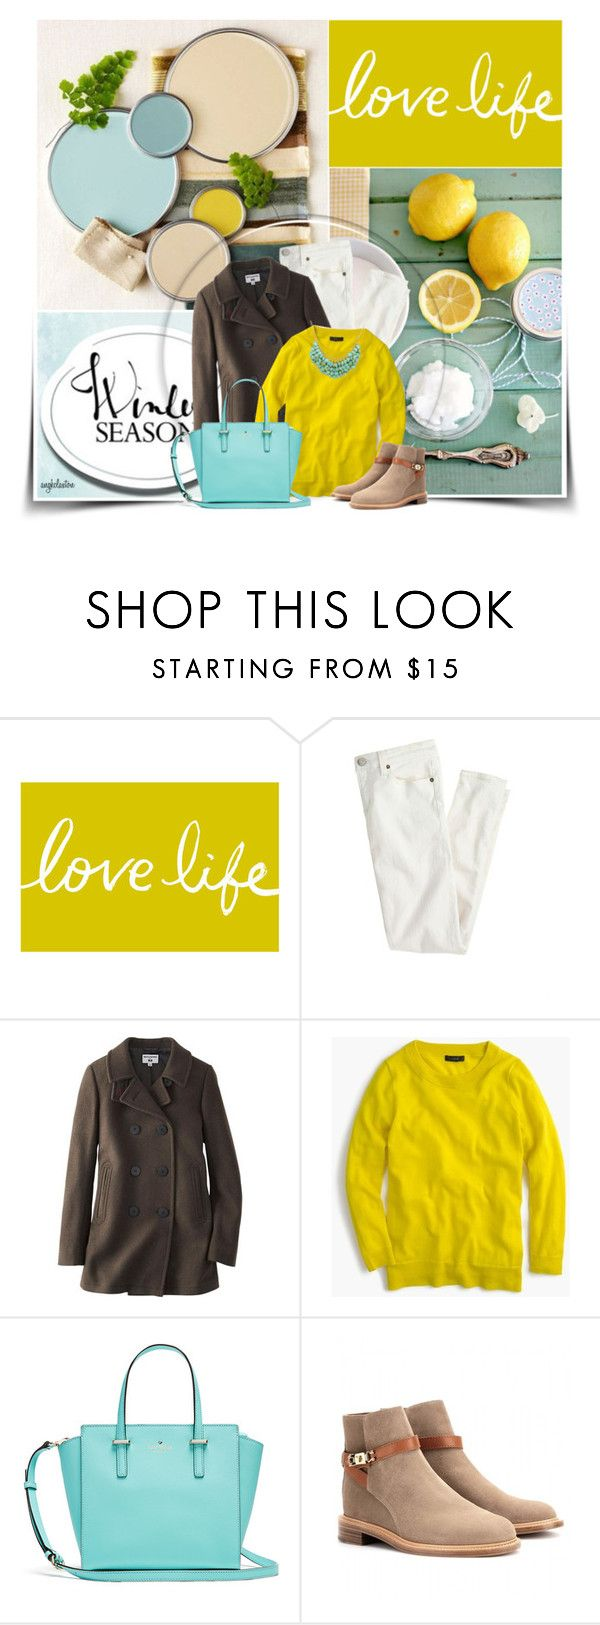 """""""Bright Colors for Winter"""" by angkclaxton ❤ liked on Polyvore featuring COMPENDIUM, J.Crew, Uniqlo and Chloé"""